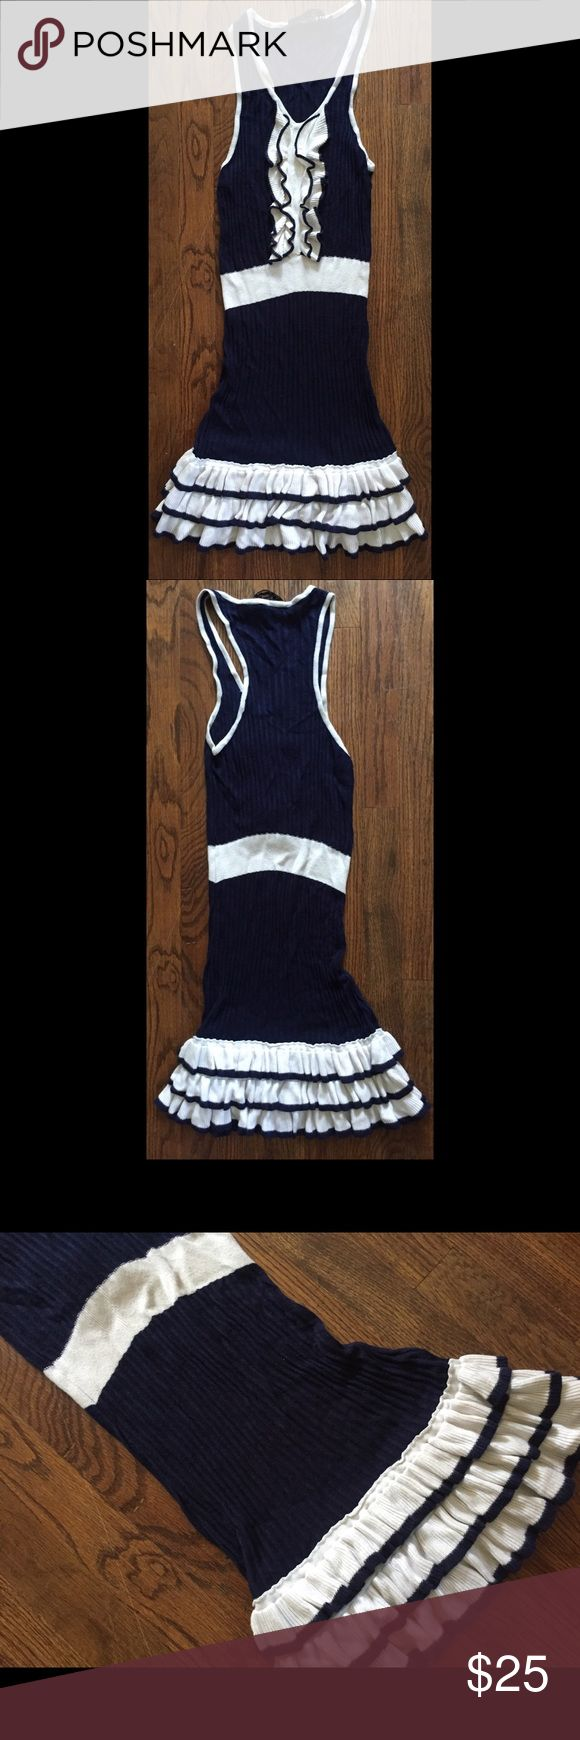 Juicy couture 20's themed dress Juicy couture 20's themed dress navy and white Juicy Couture Dresses Mini